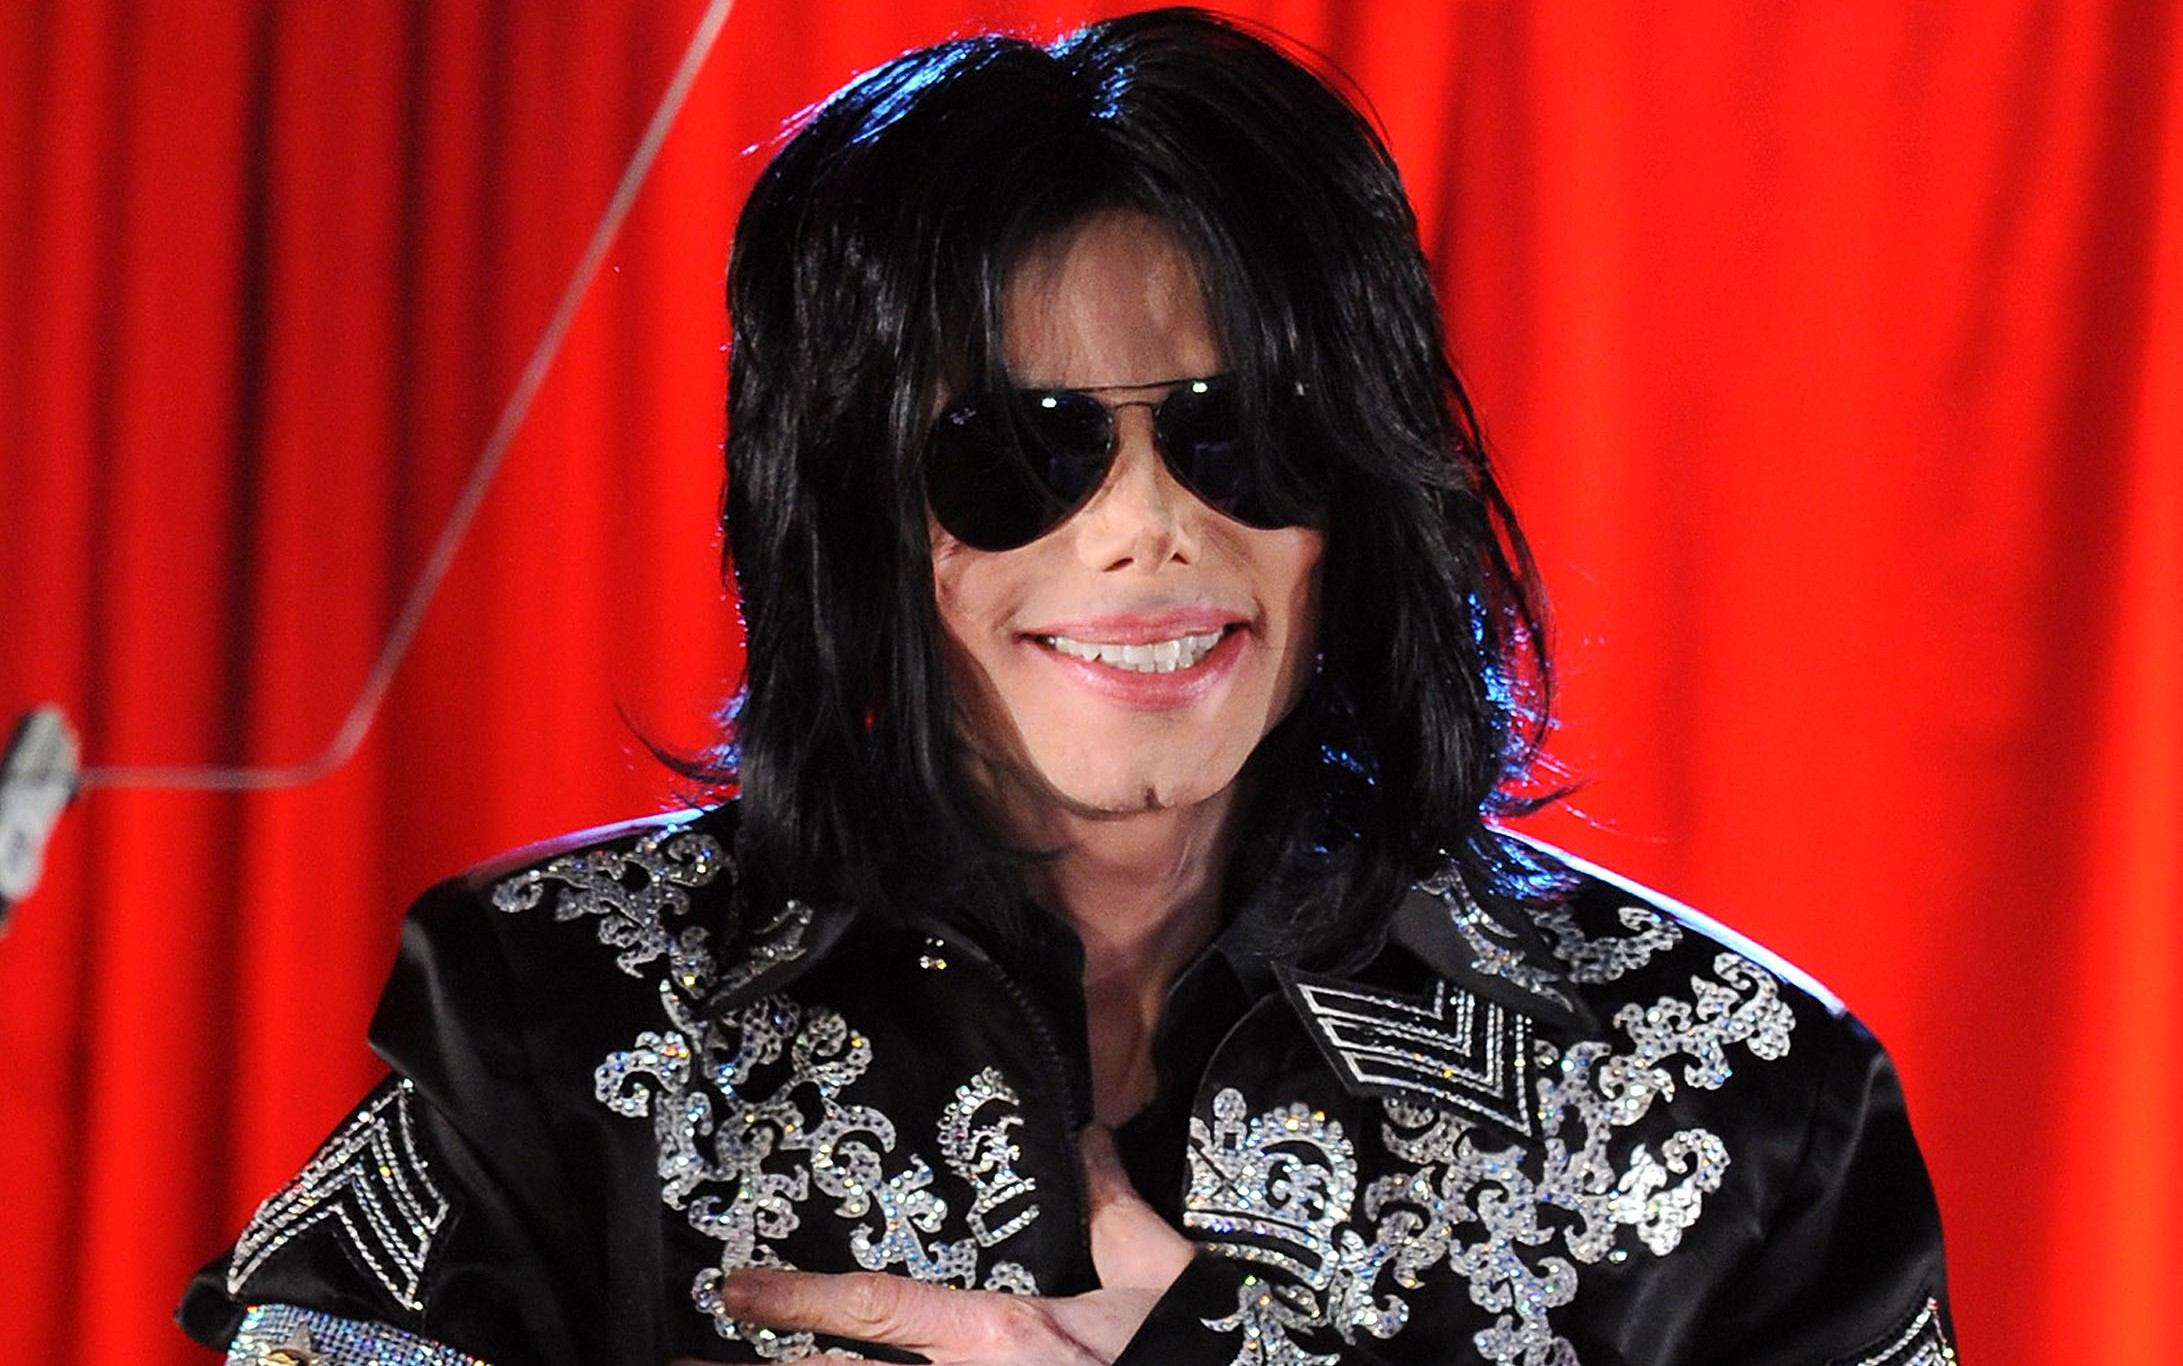 Michael Jackson's Simpsons episode pulled by producers